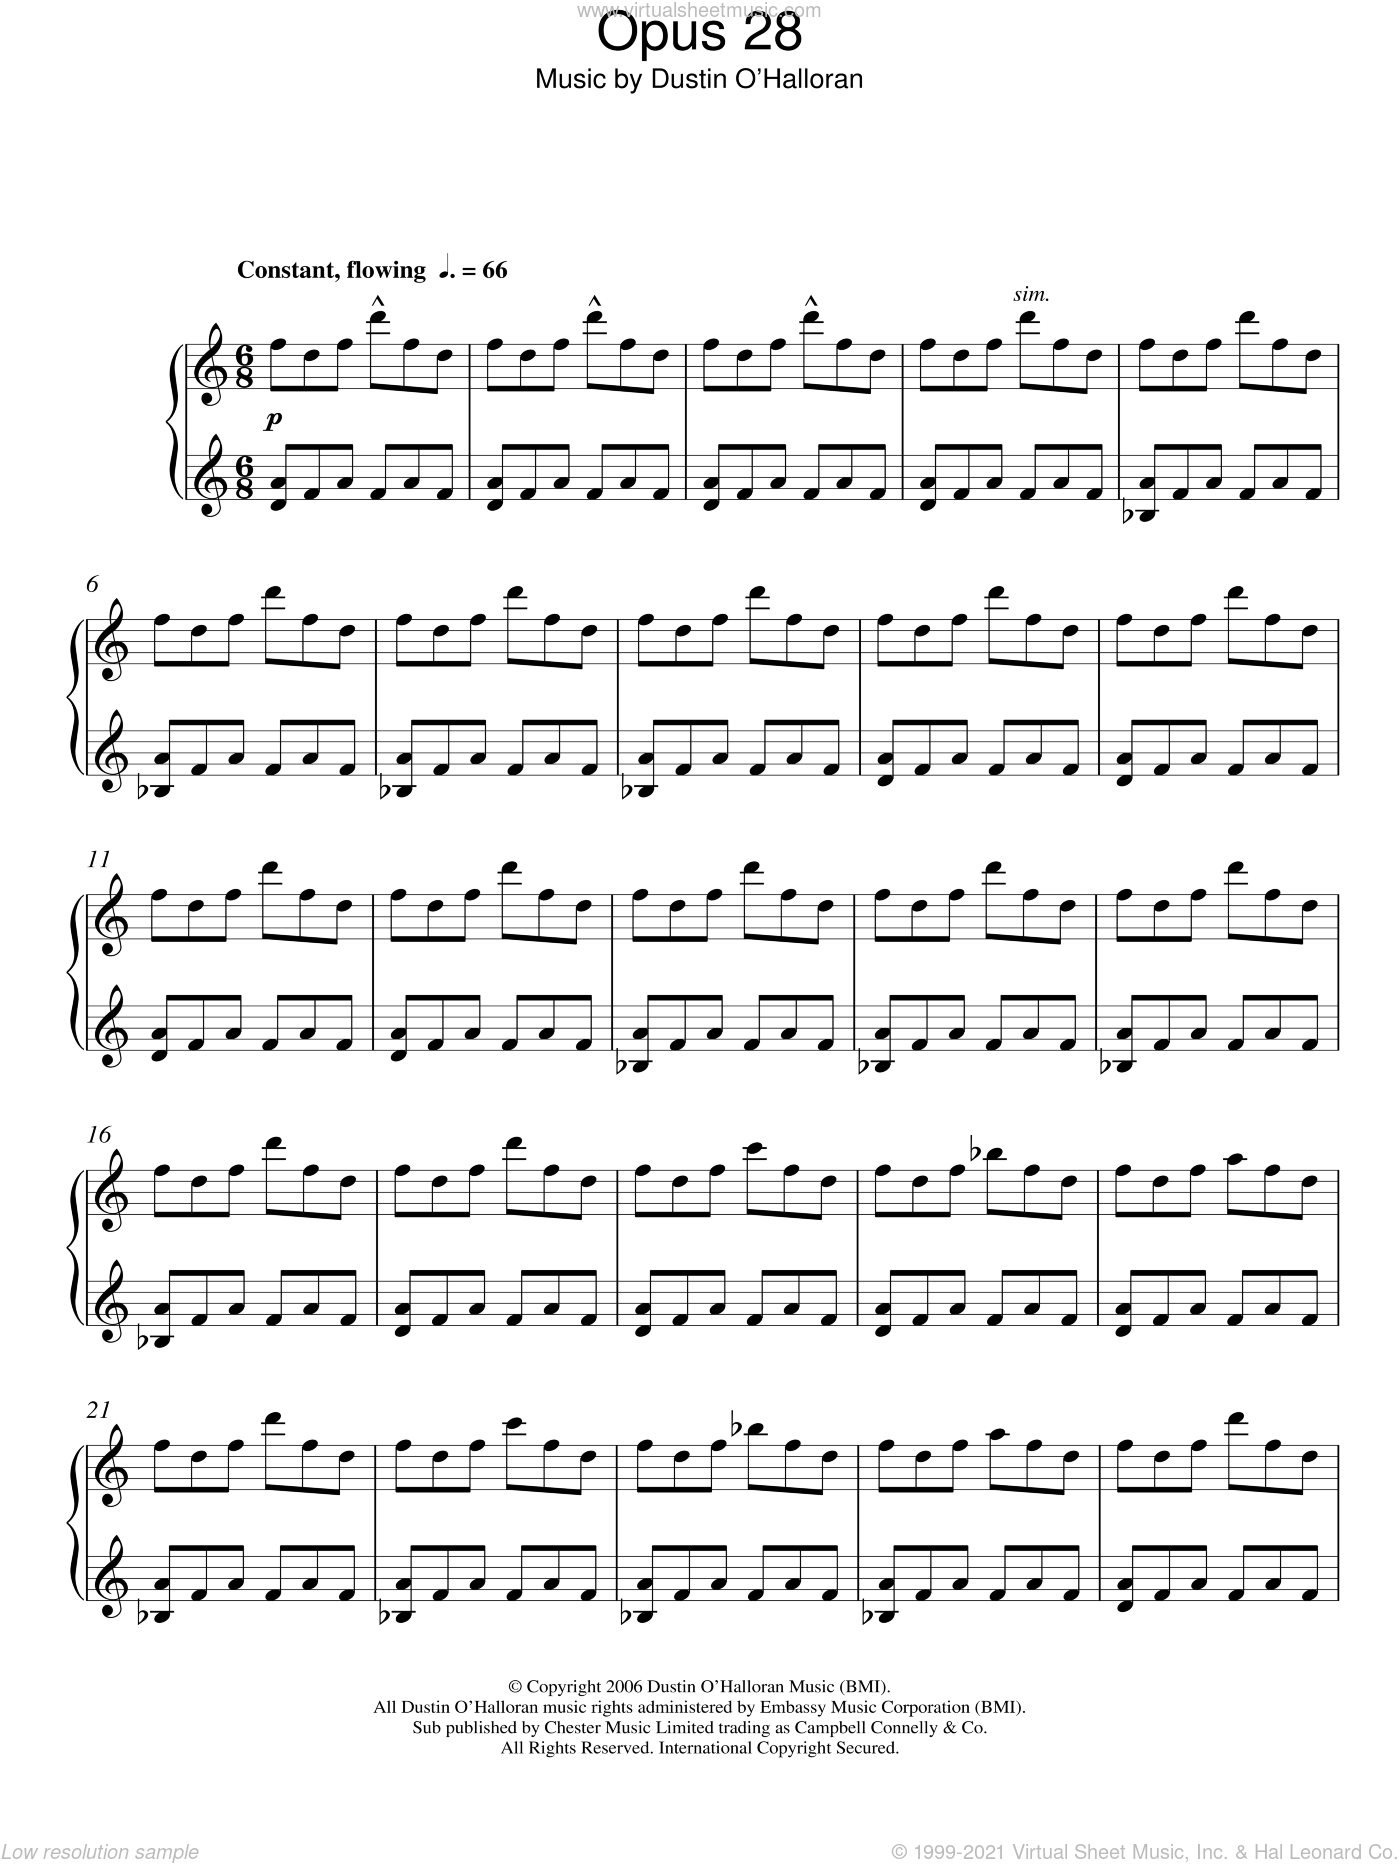 Opus 28 sheet music for piano solo by Dustin O'Halloran